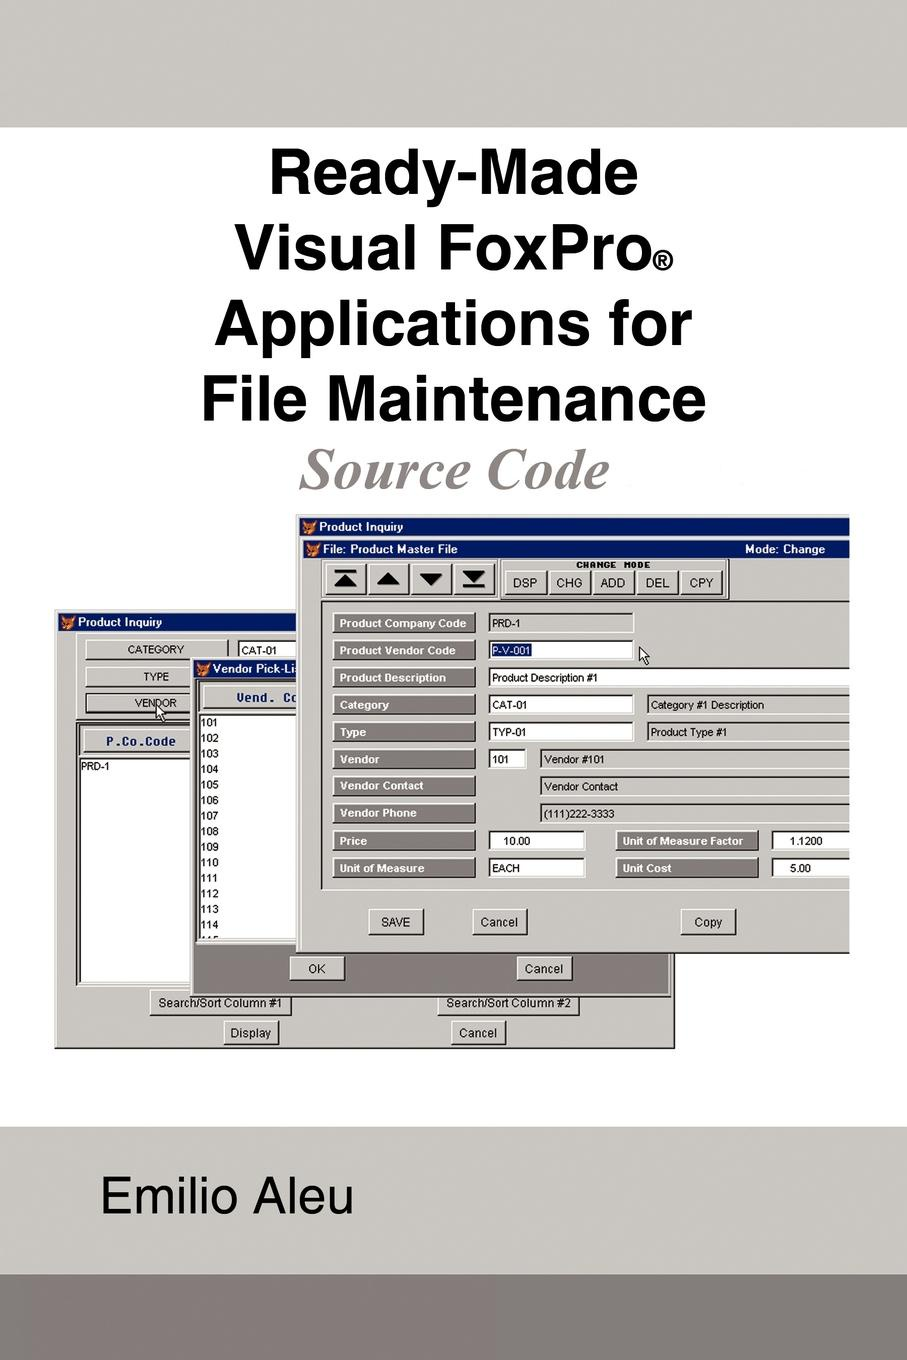 Emilio Aleu Ready-Made Visual FoxPro Applications for File Maintenance. Source Code джеймс аллен путь процветания isbn 978 985 15 2535 1